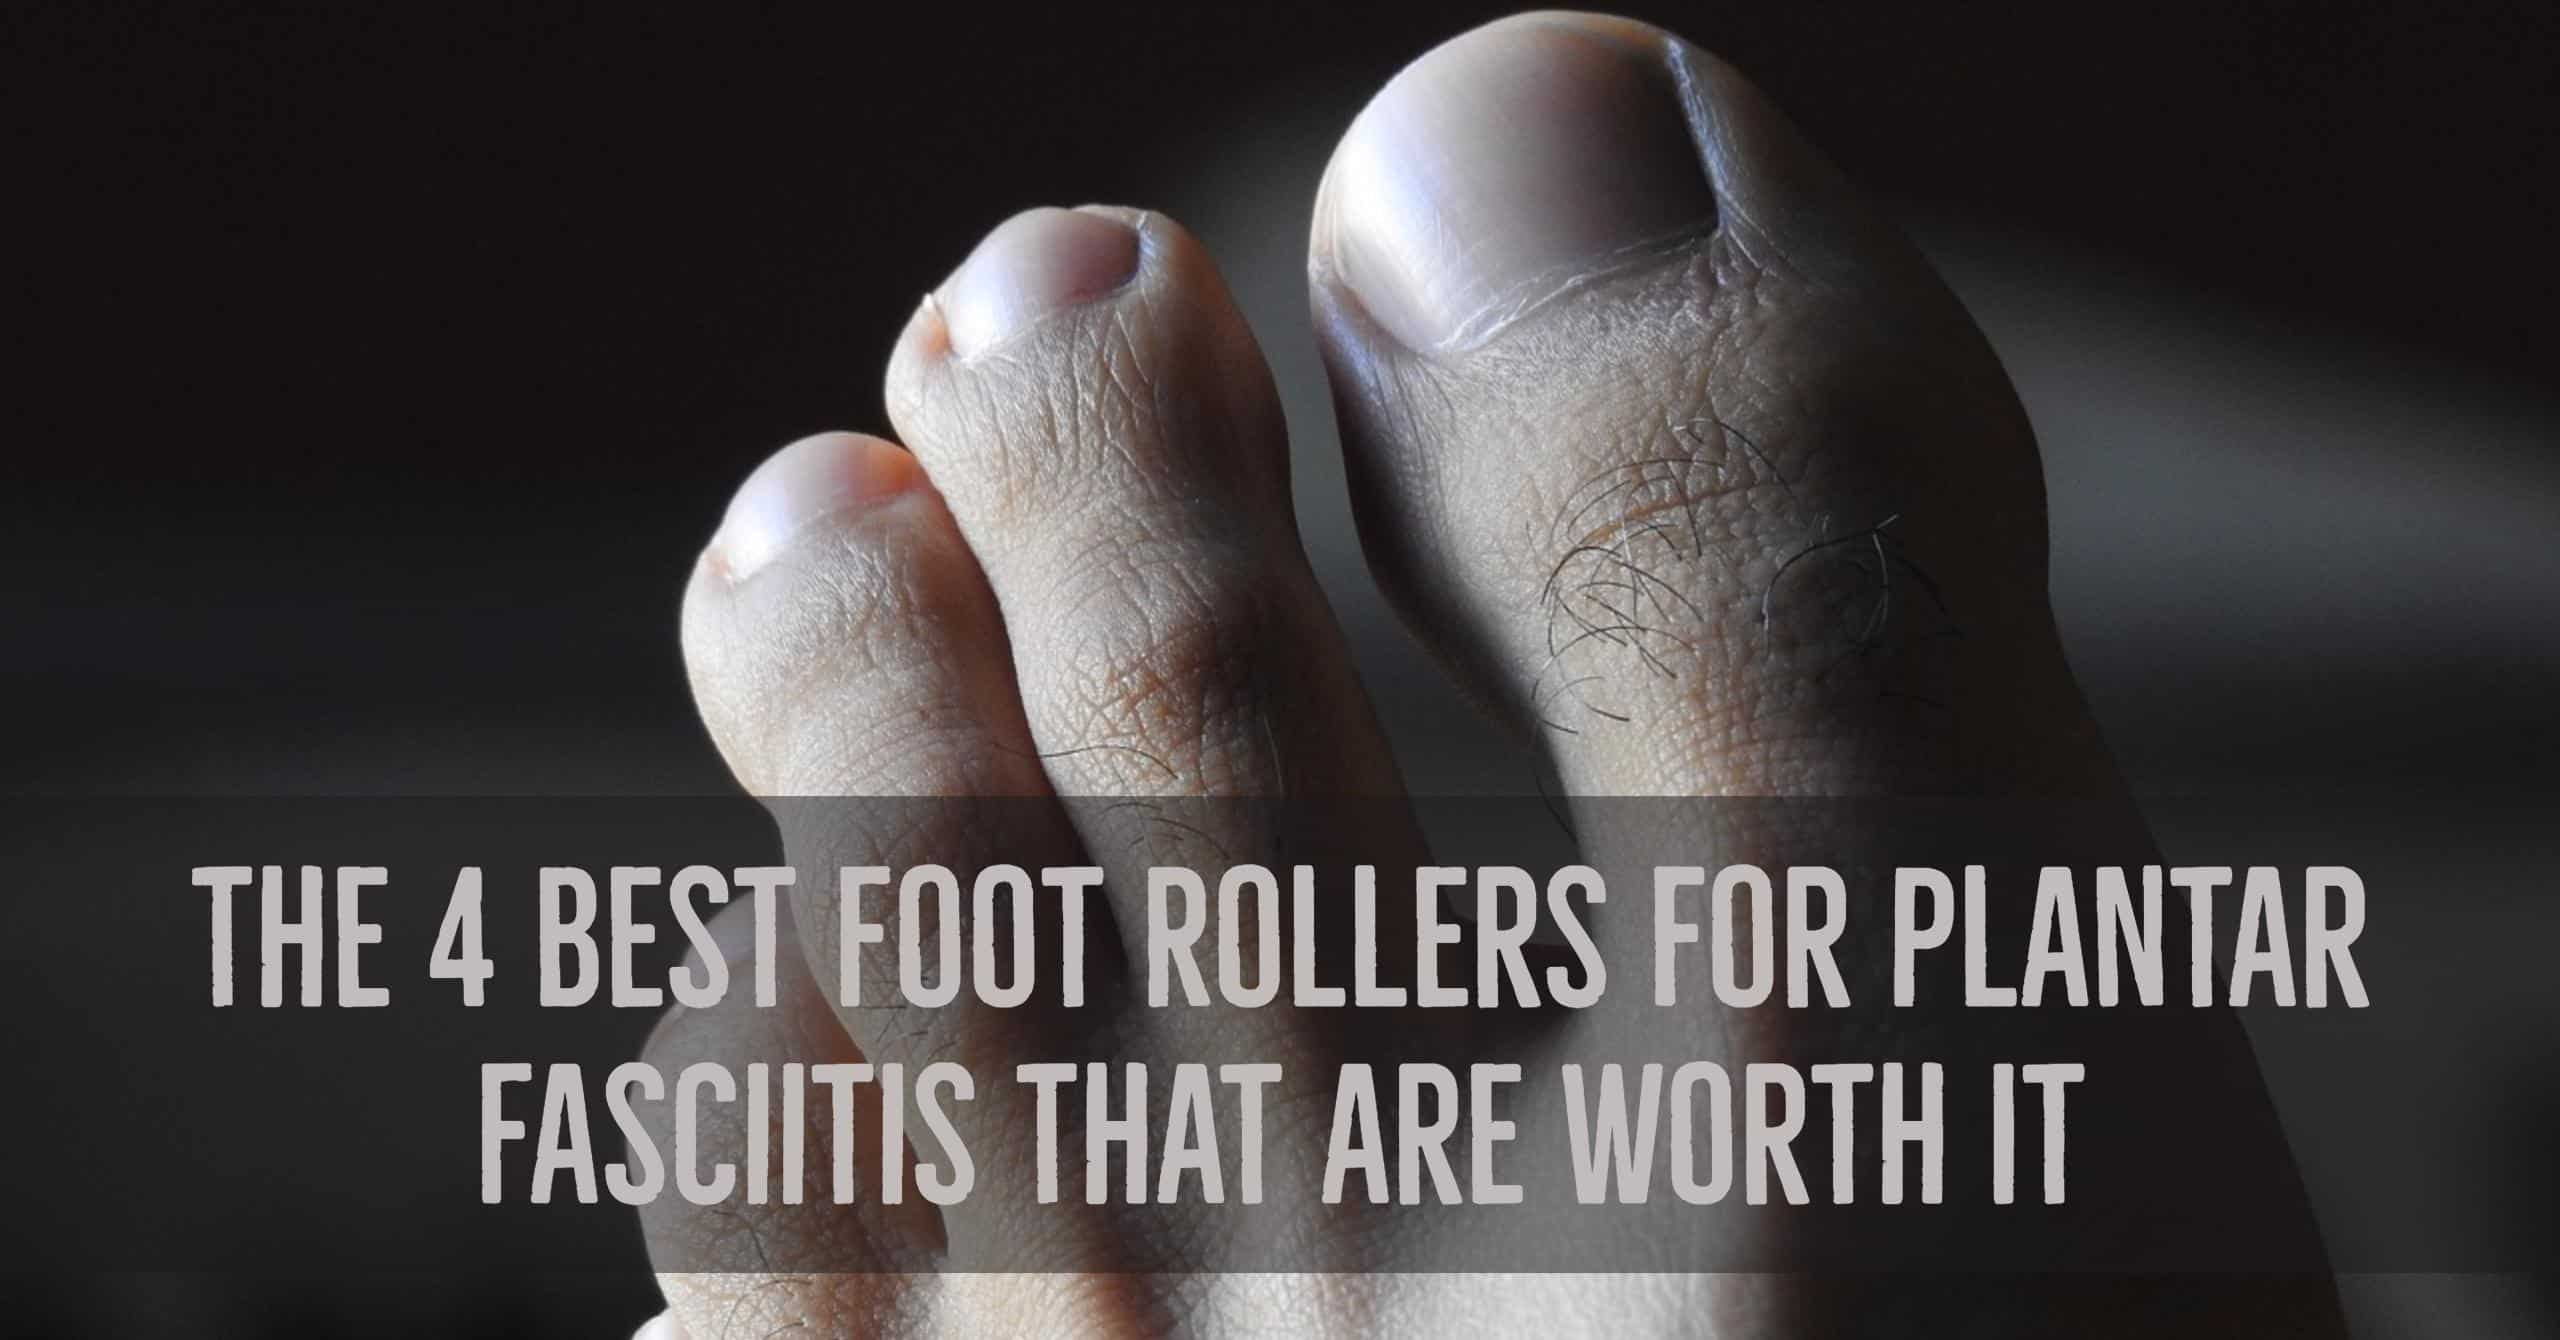 Painful plantar fasciitis can make many runners stop running all together. A simple foot roller can solve some of the issues. Here are the 4 best foot rollers for plantar fasciitis that are worth It